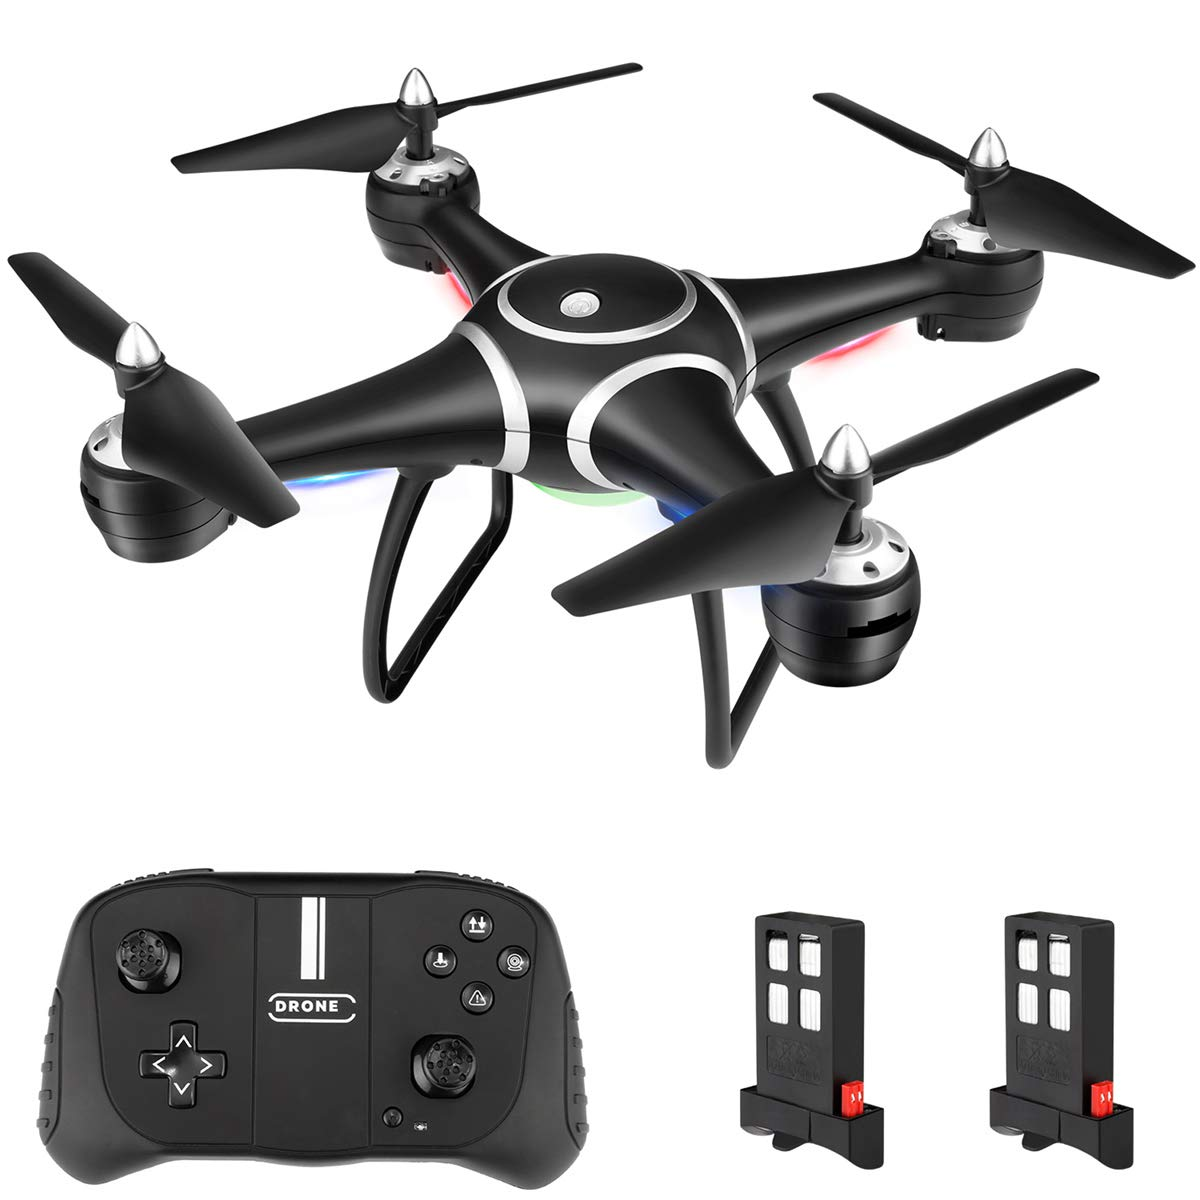 RC Drone Quadcopter, HALOFUNO Remote Control Toys Drones Plane with Altitude Hold Mode One Key Take Off/Landing 3D Flips Headless Mode for Adults Boys Girls-Black ...